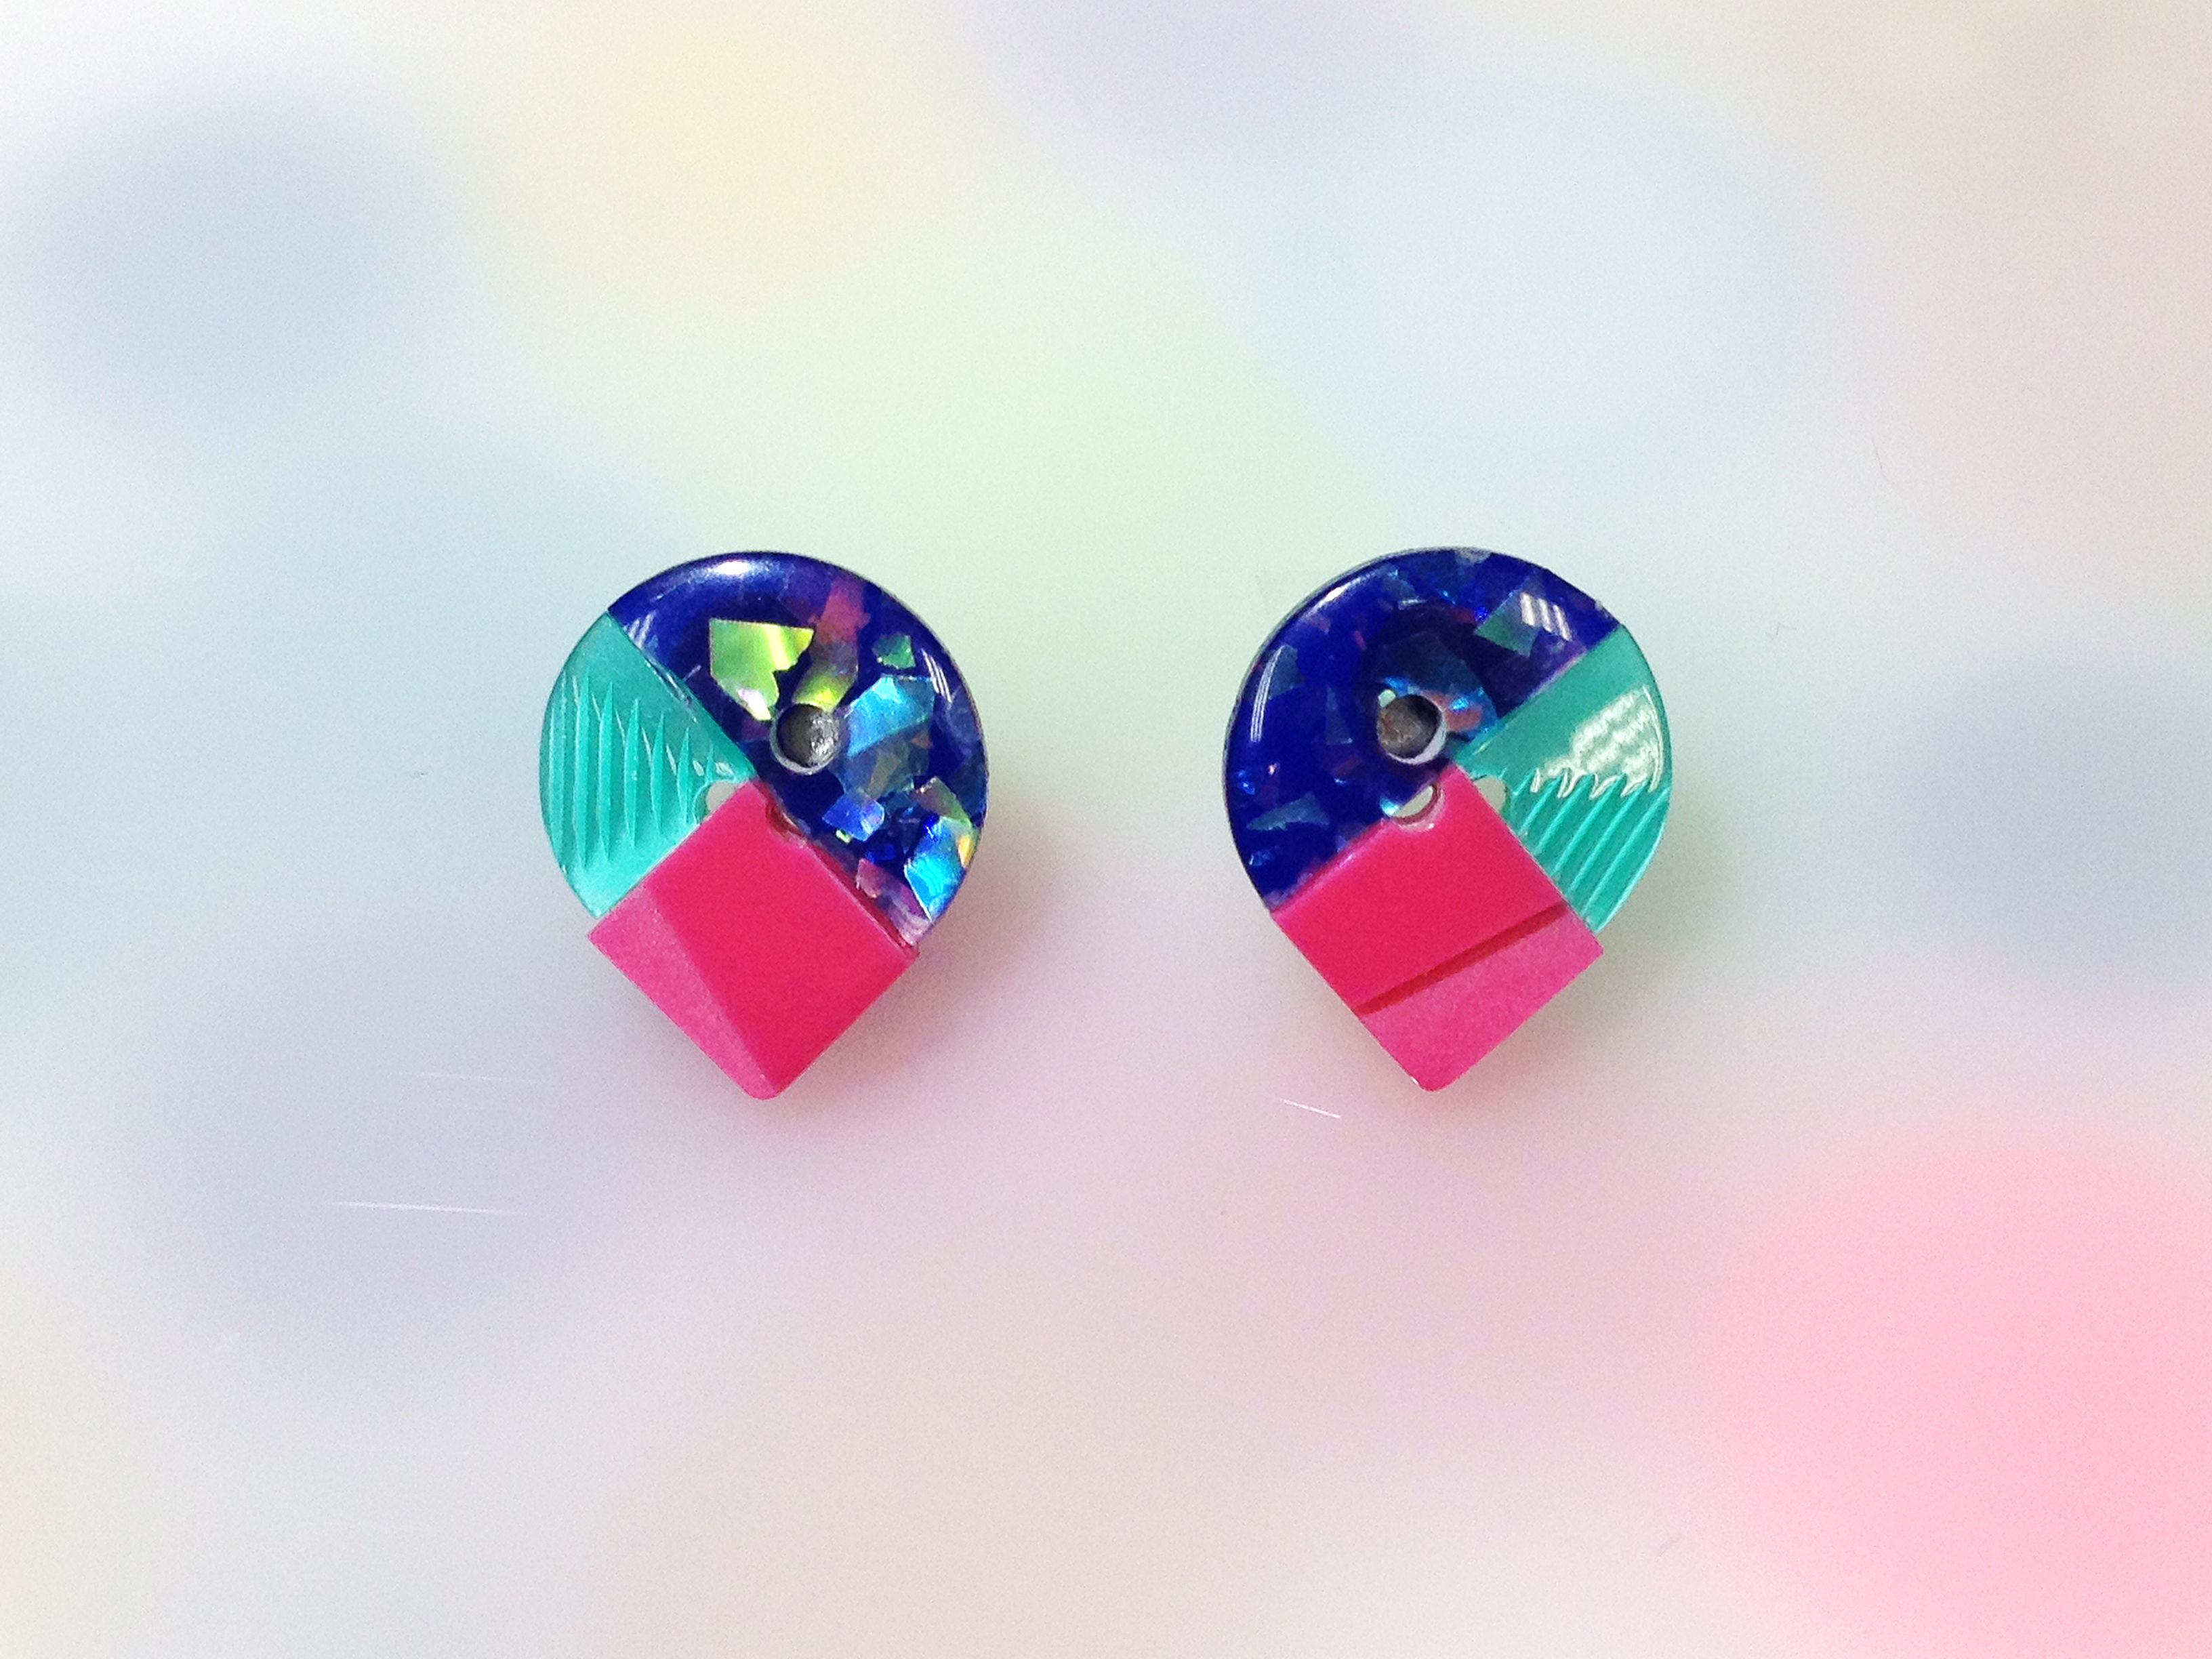 Button pierced earrings ボタンピアス/3トーン・ブルーラメ×ターコイズ×ピンク